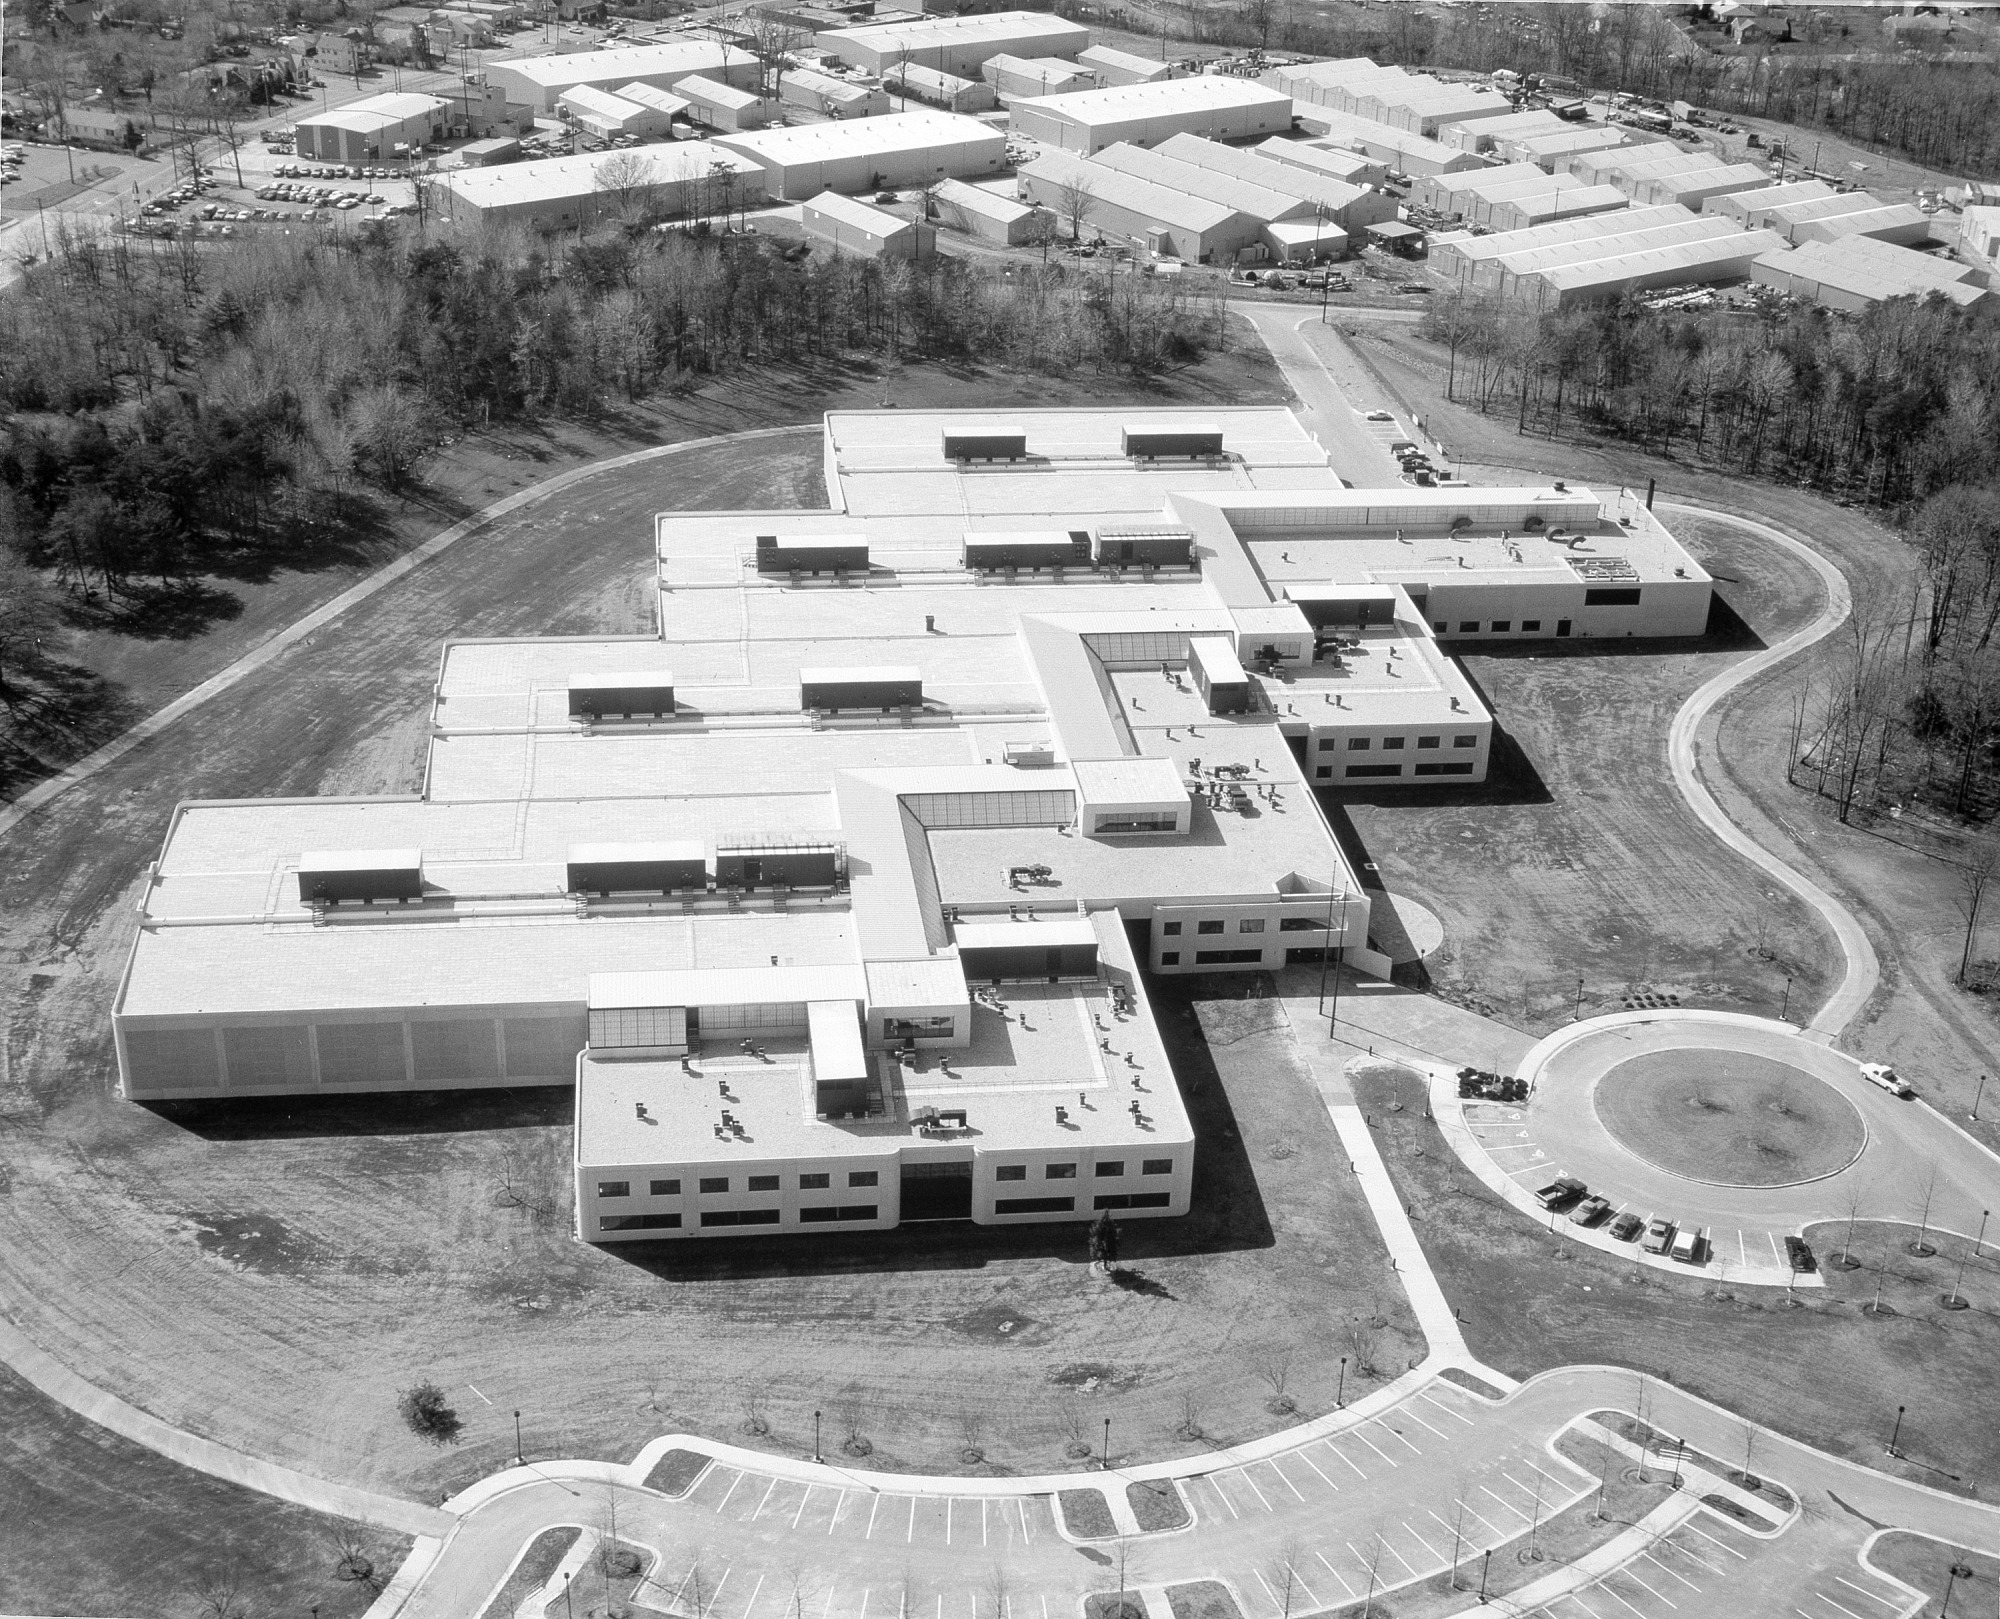 May 16 Aerial View of Museum Support Center, Suitland, MD